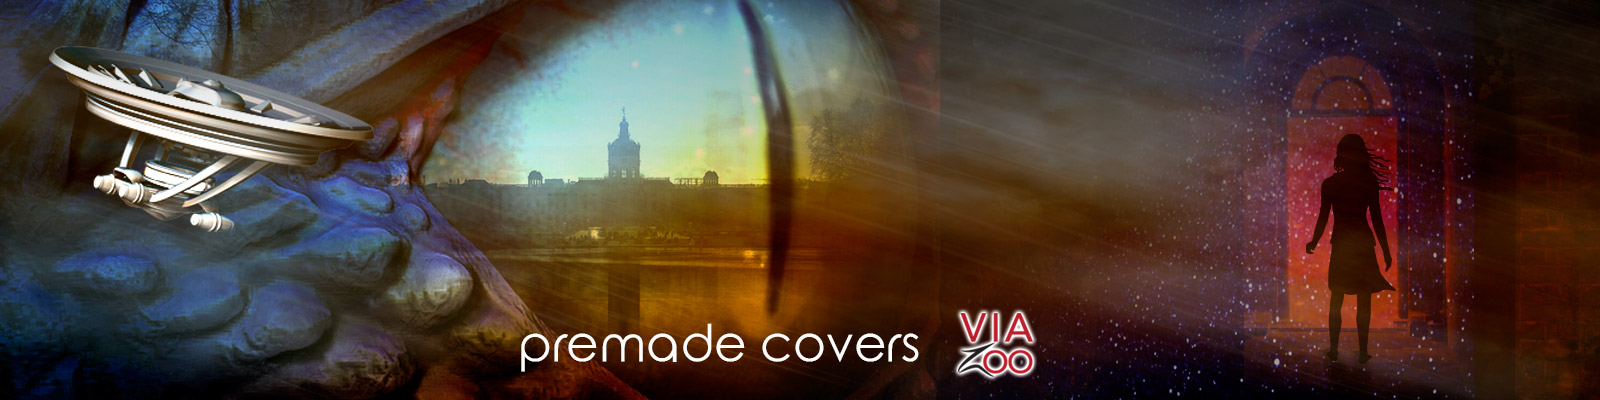 premade covers header